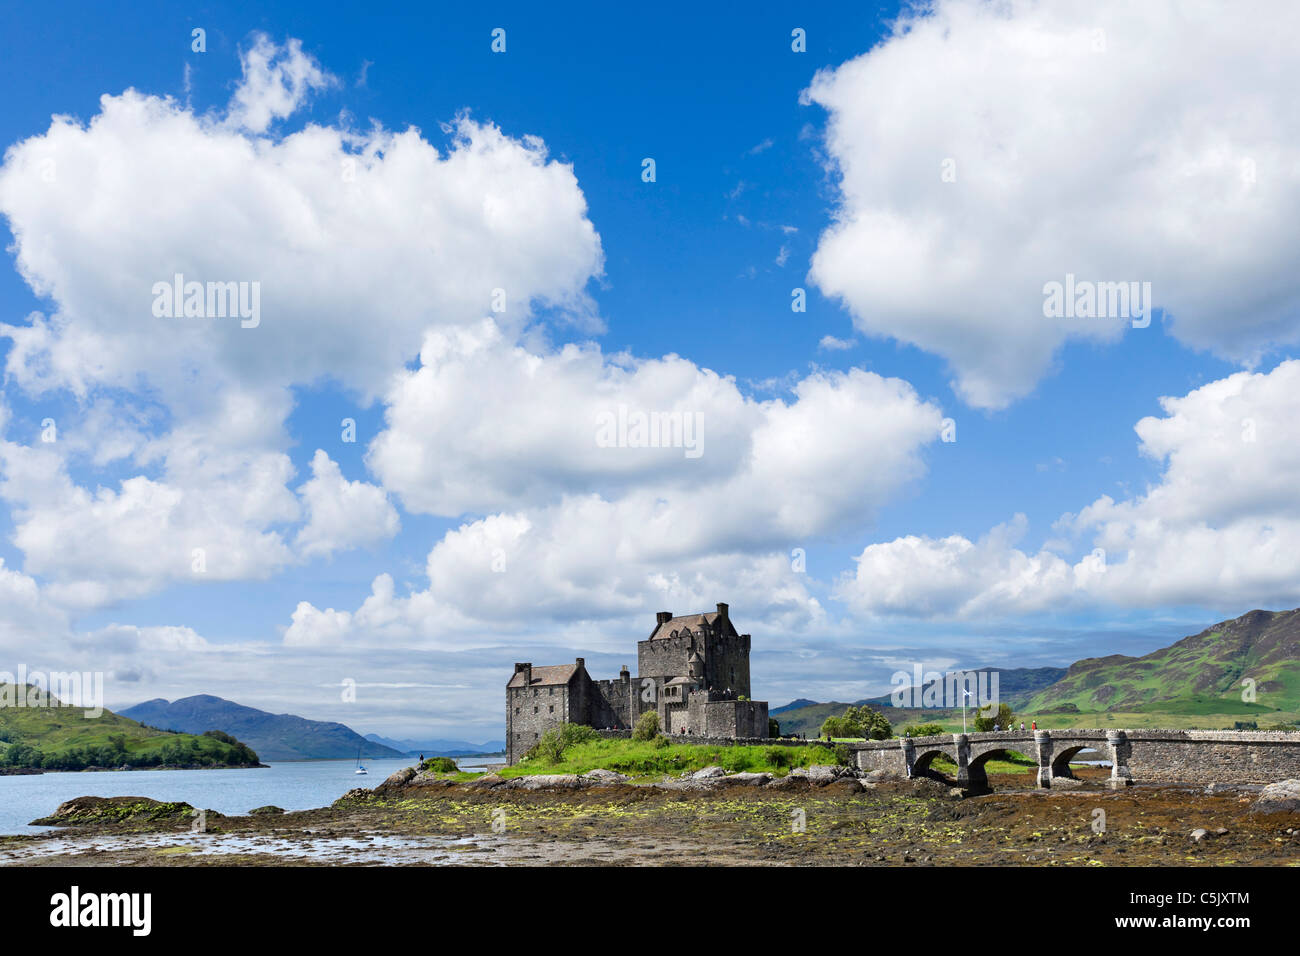 View towards Eilean Donan Castle, Loch Duich, Highland, Scotland, UK. Scottish landscape / landscapes. - Stock Image